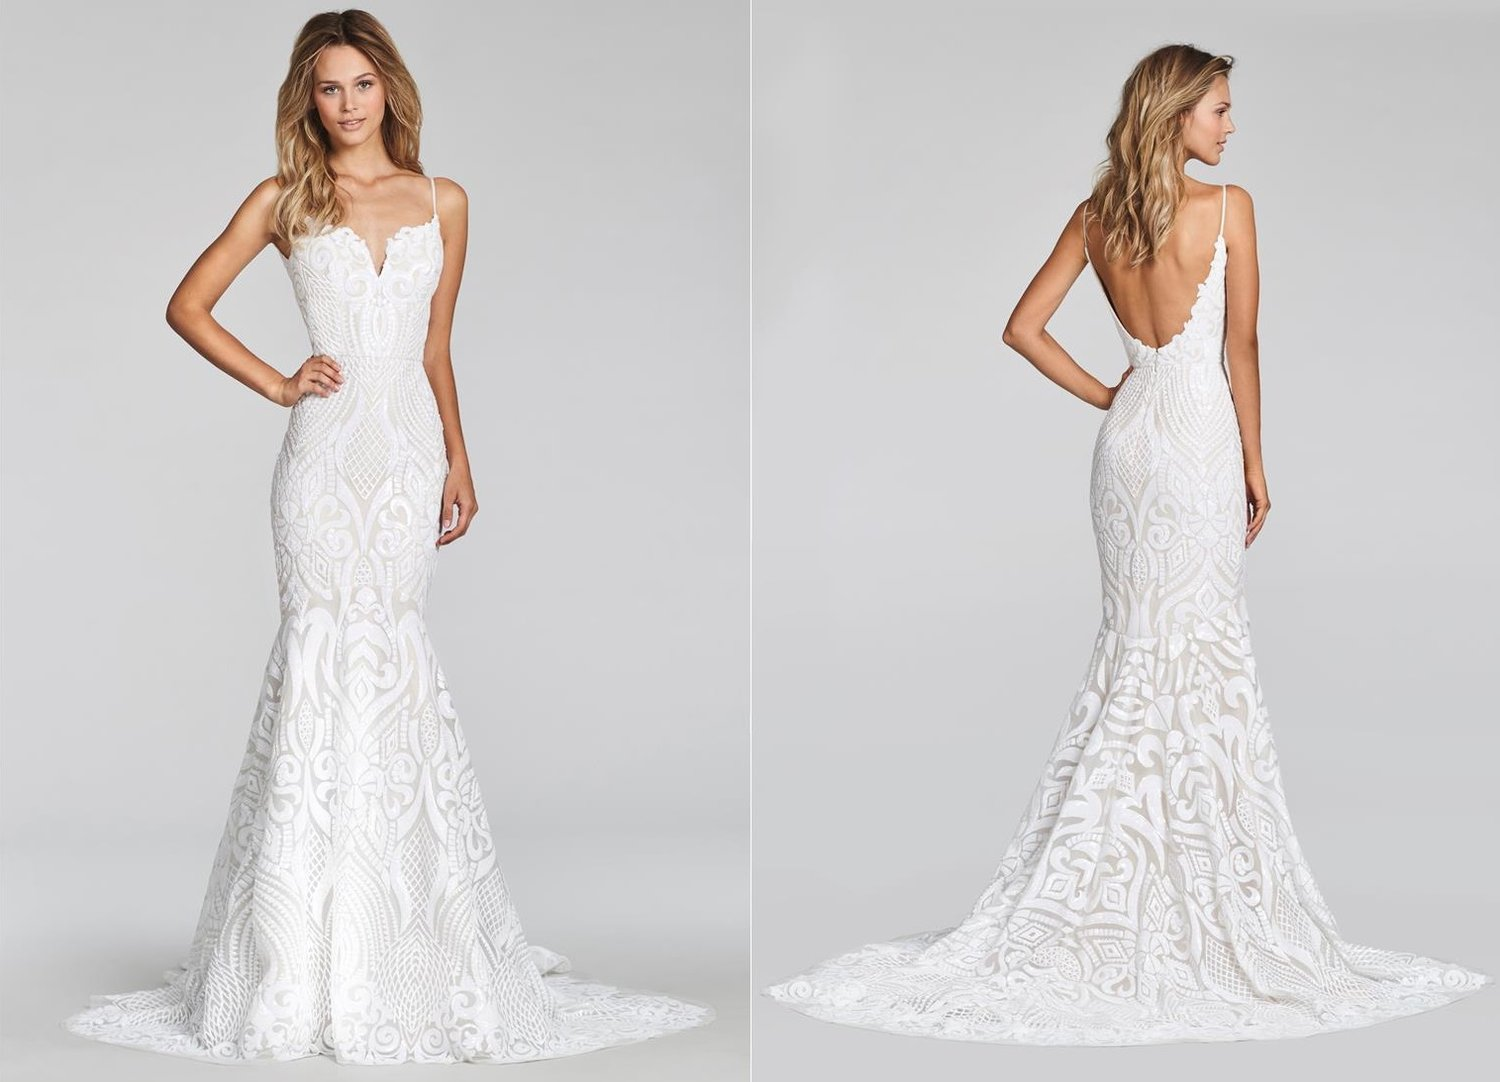 Blush by Hayley Paige West Wedding Gown / Style 1710